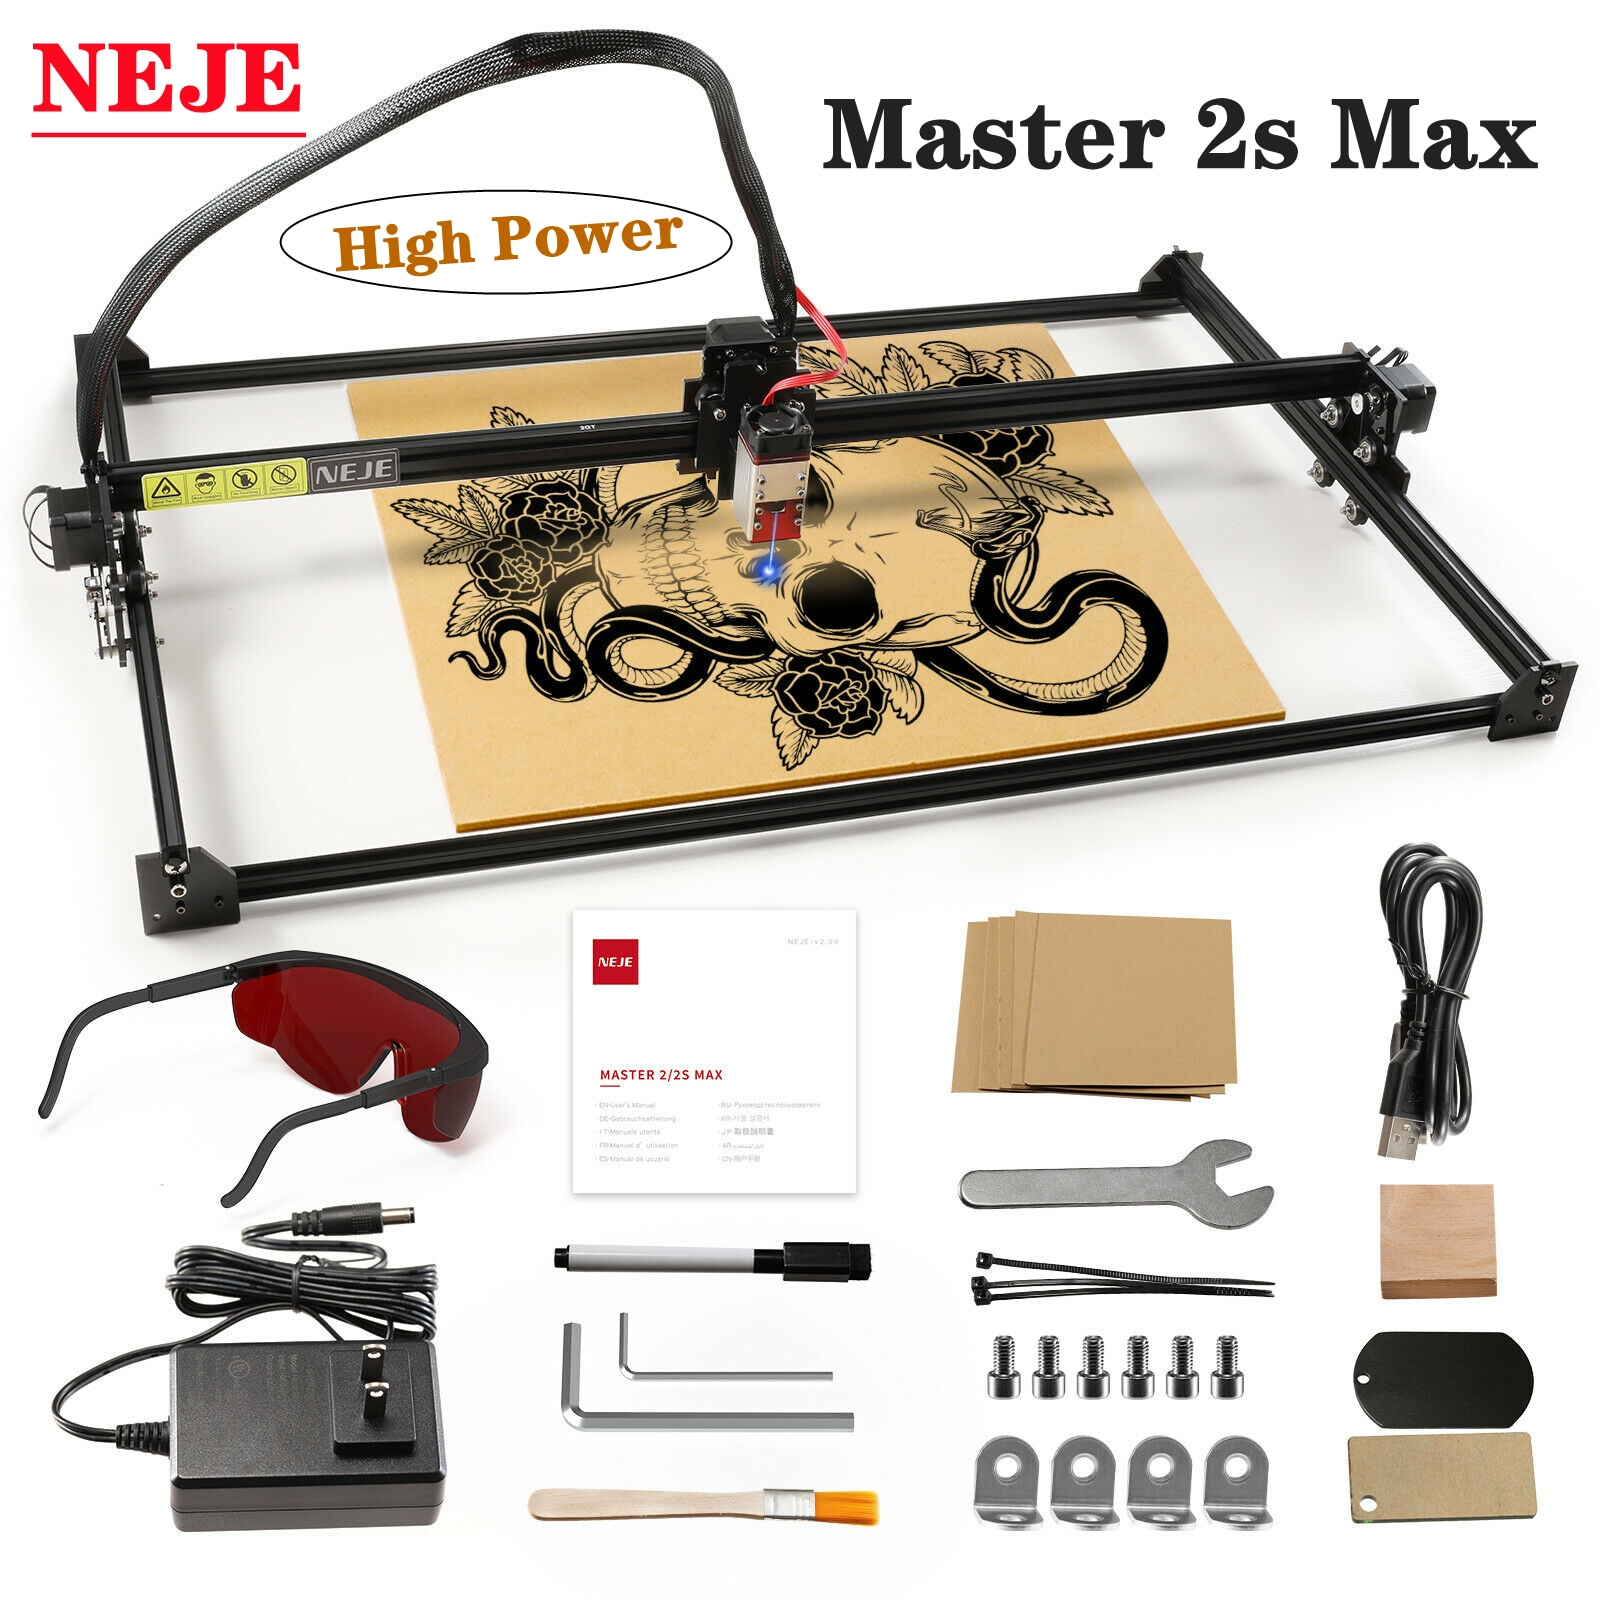 NEJE Master 2s Max- 460 X 810 MM - High Power Engraving Machine CNC Lightburn App Control Laser Cutter Material for Wood/Leather